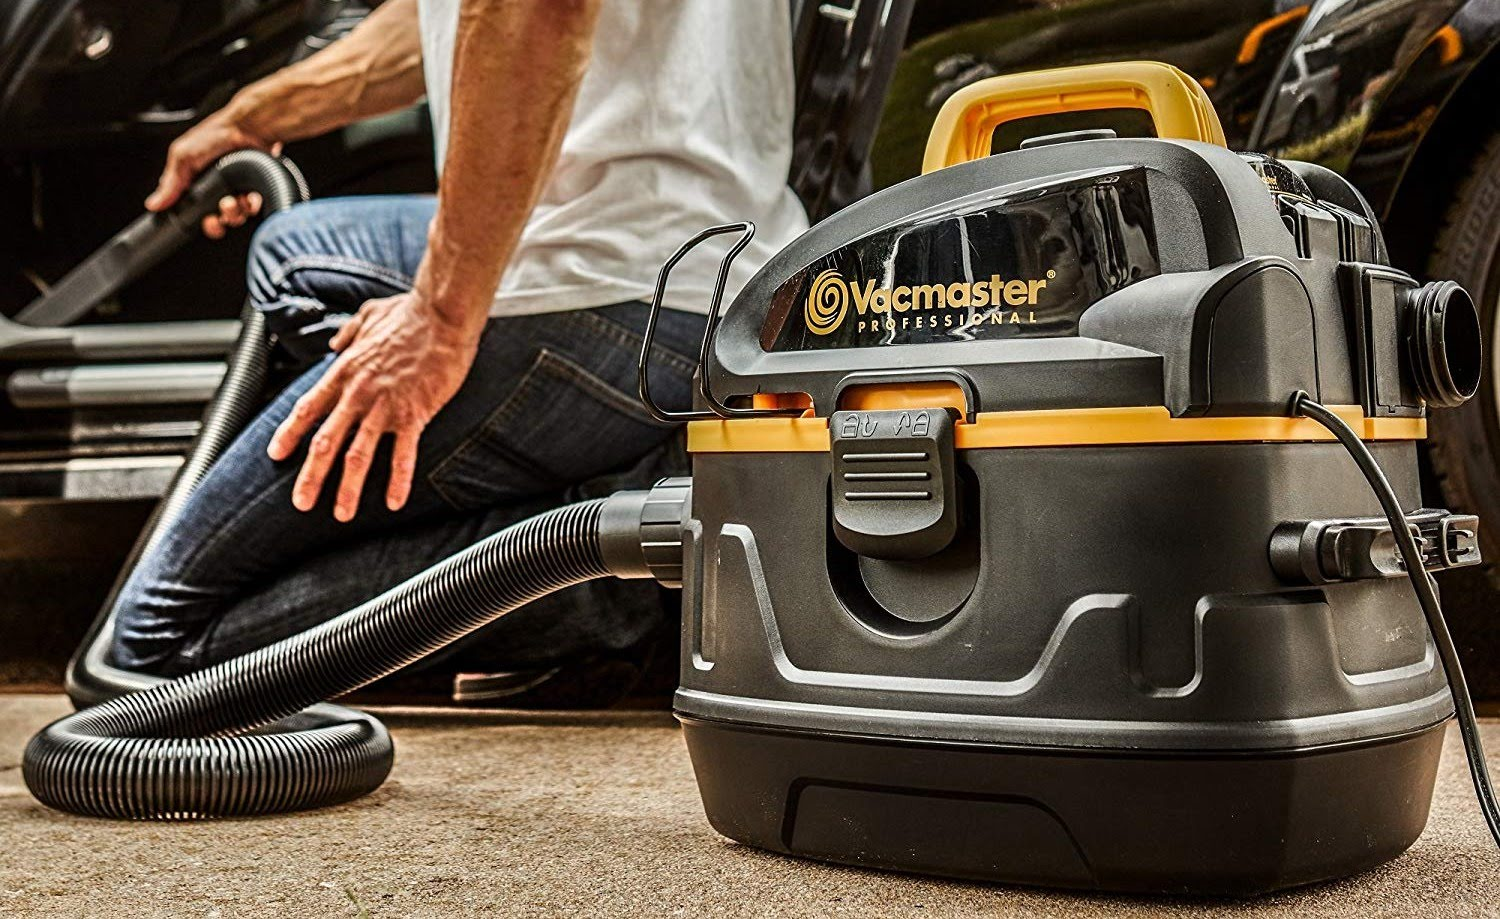 🥇 Quietest Wet Dry Vacuum on the Market Today